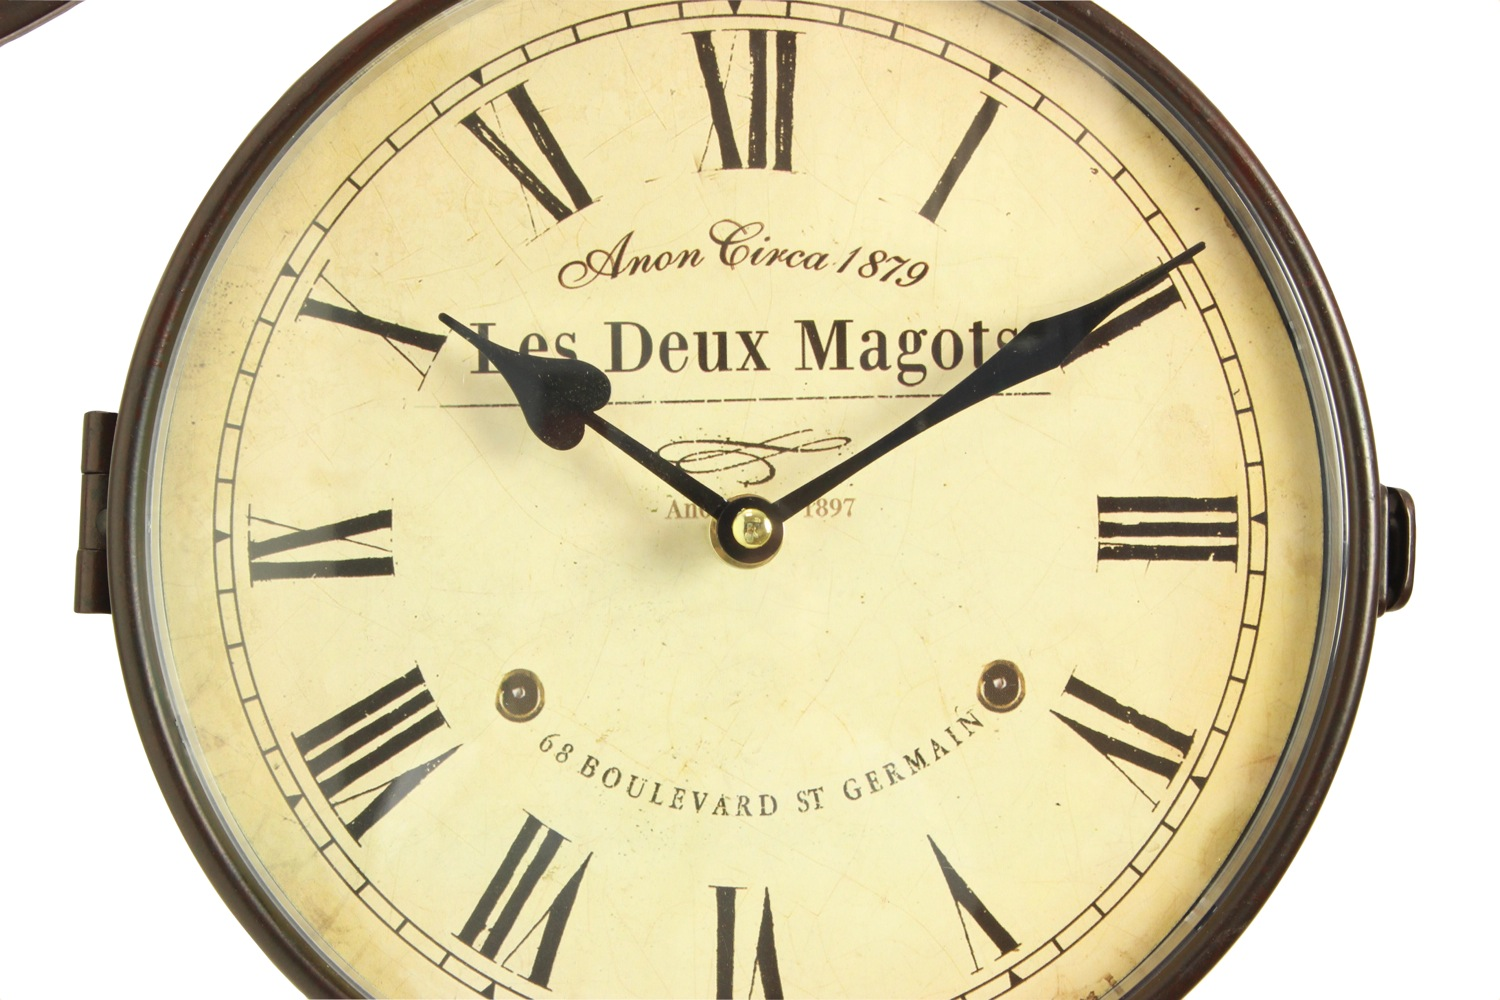 horloge de gare ancienne double face les deux magots 24cm. Black Bedroom Furniture Sets. Home Design Ideas